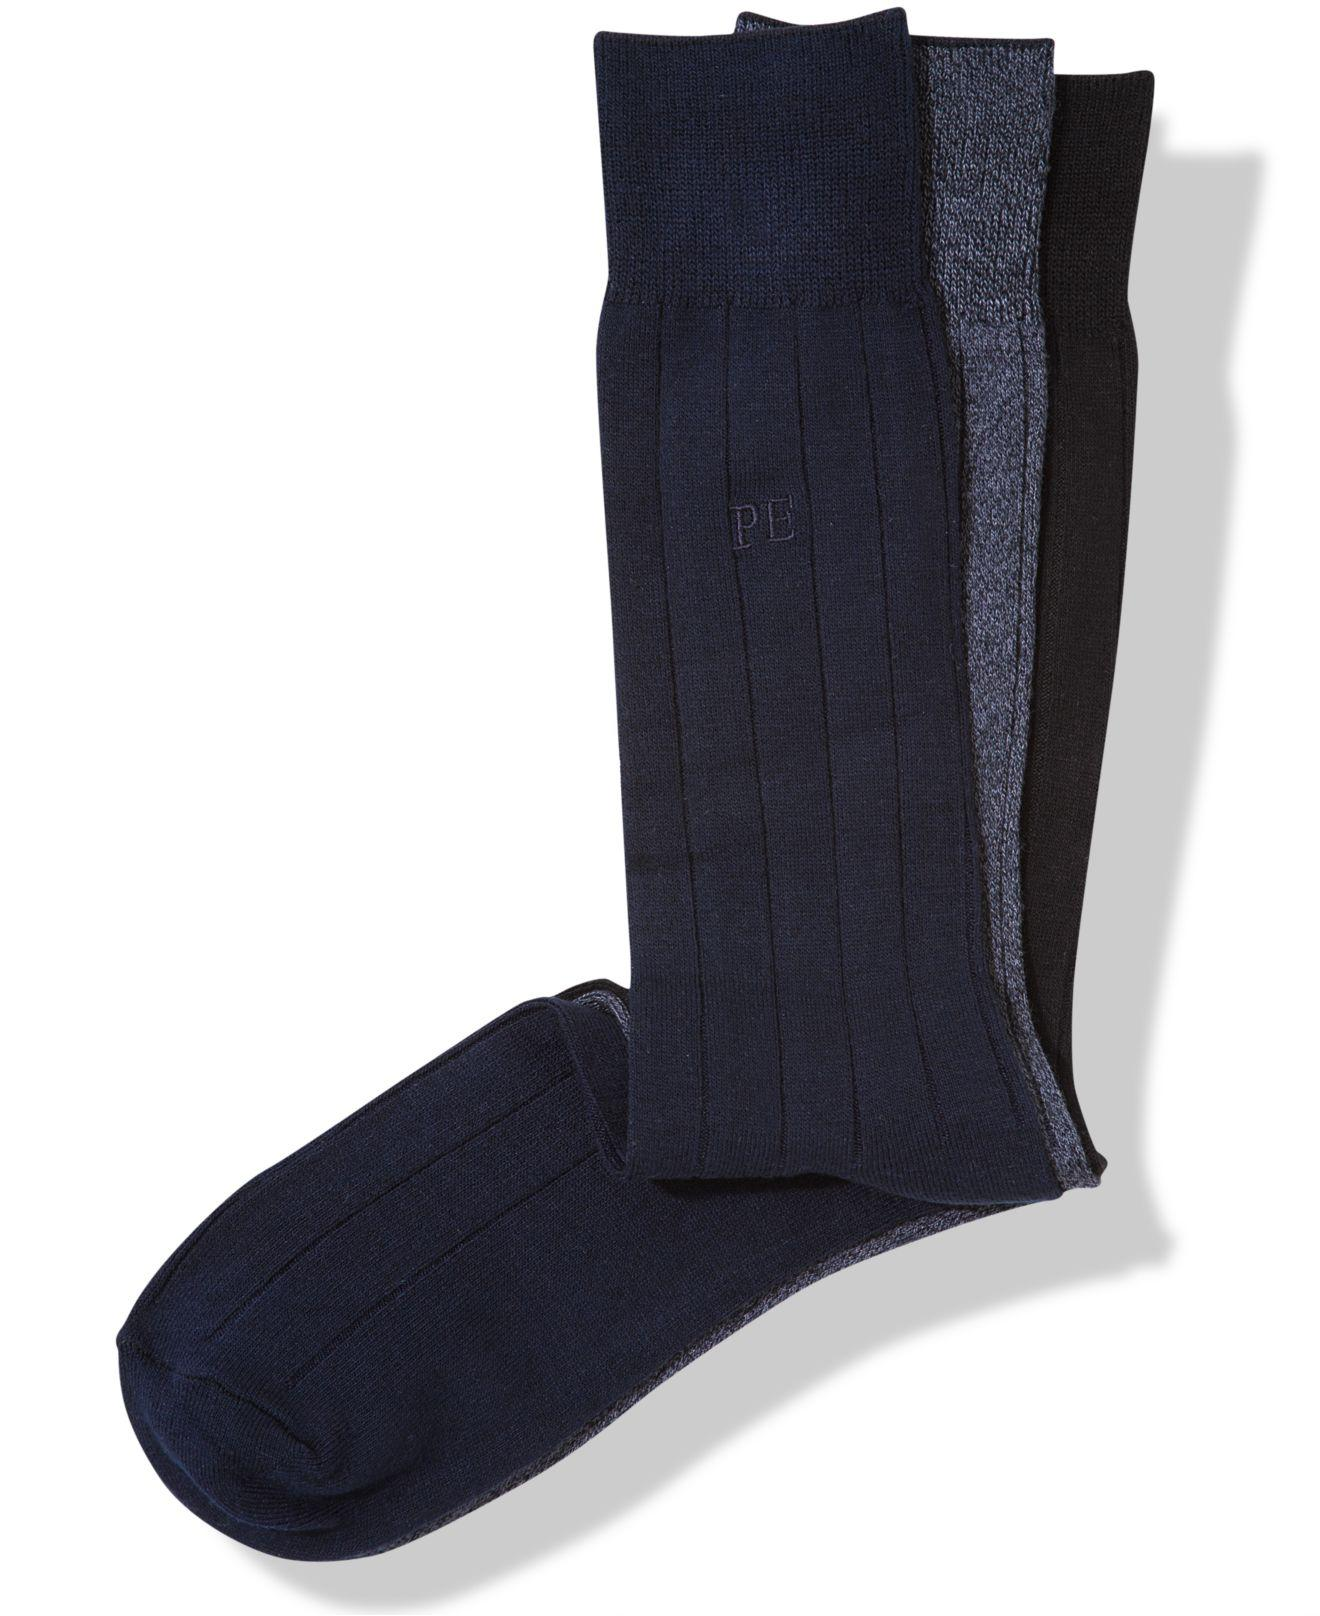 003d1f44ed Perry Ellis. Men s Blue Socks